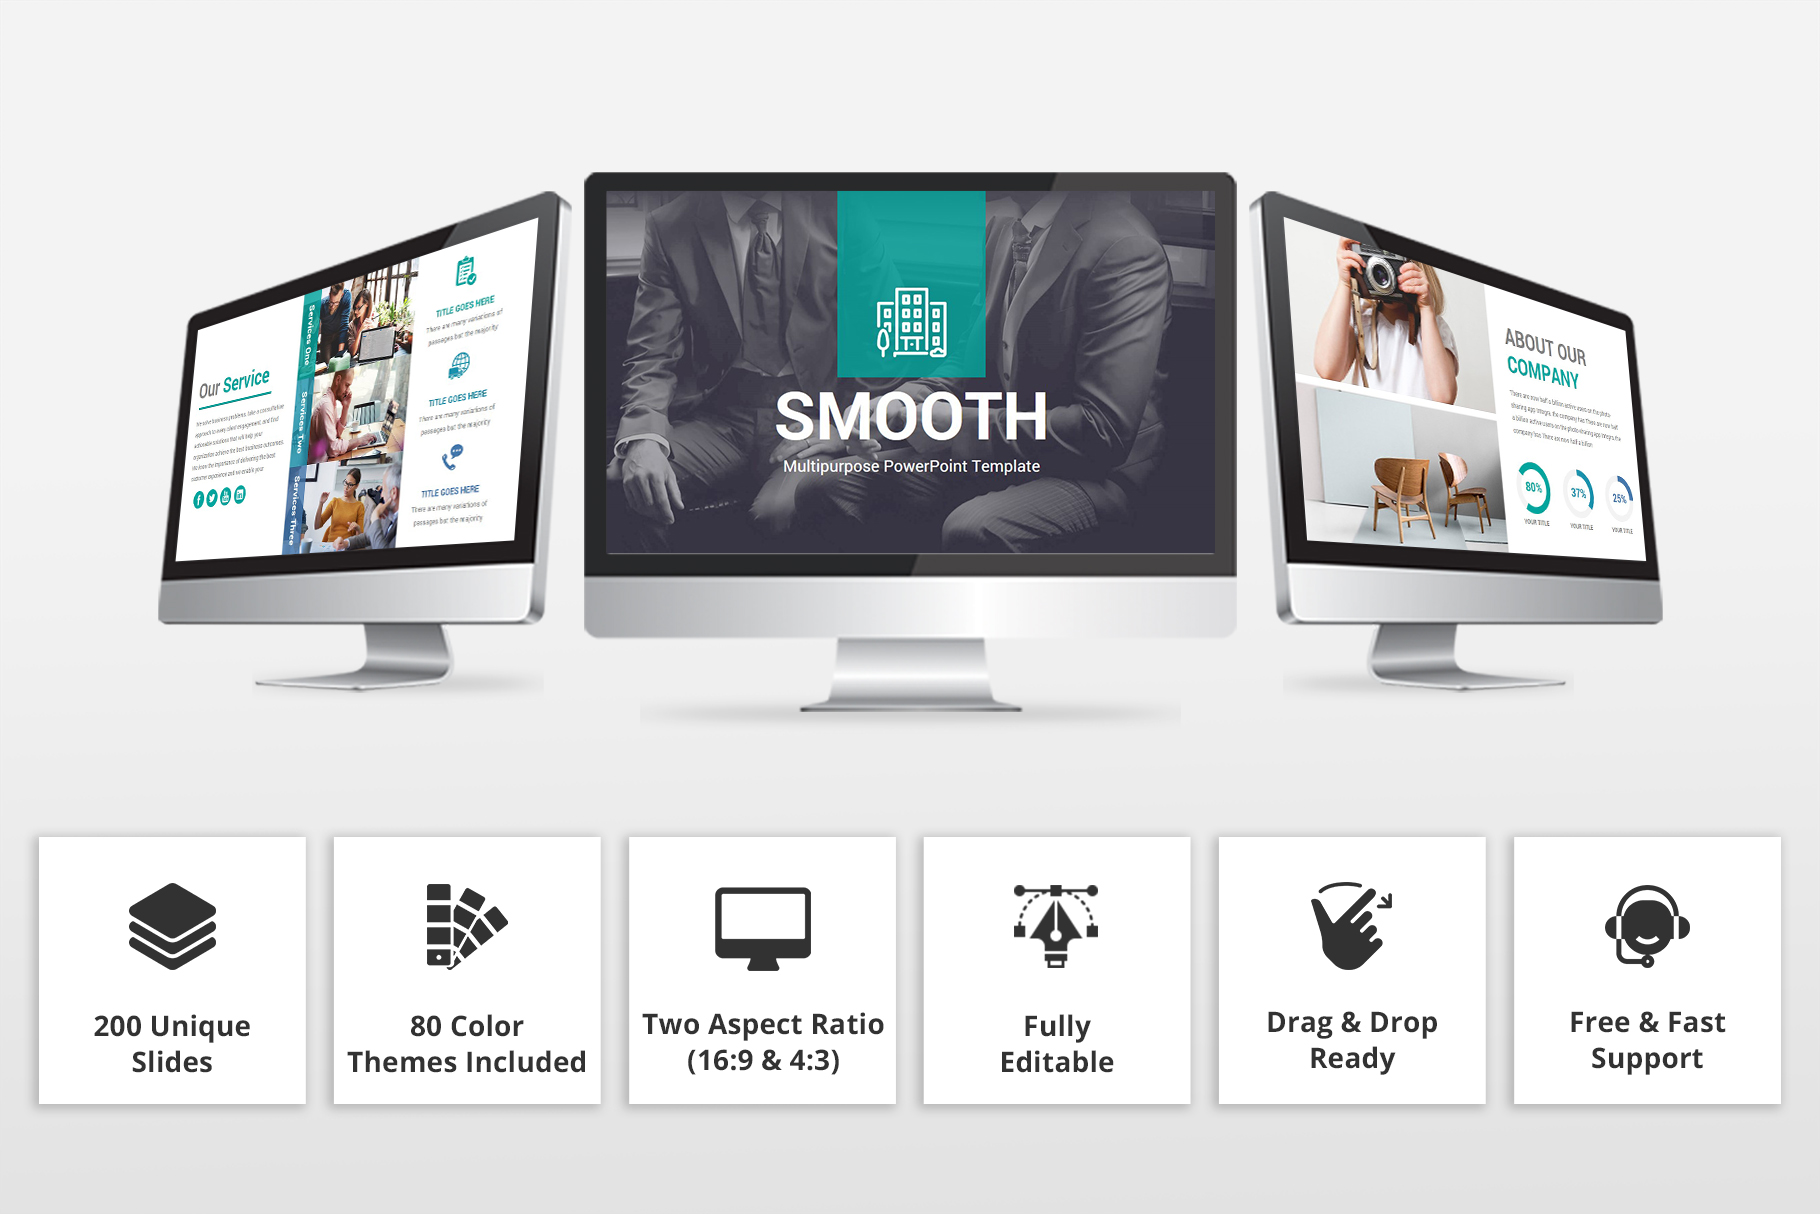 Smooth multipurpose PowerPoint Presentation Template example image 2